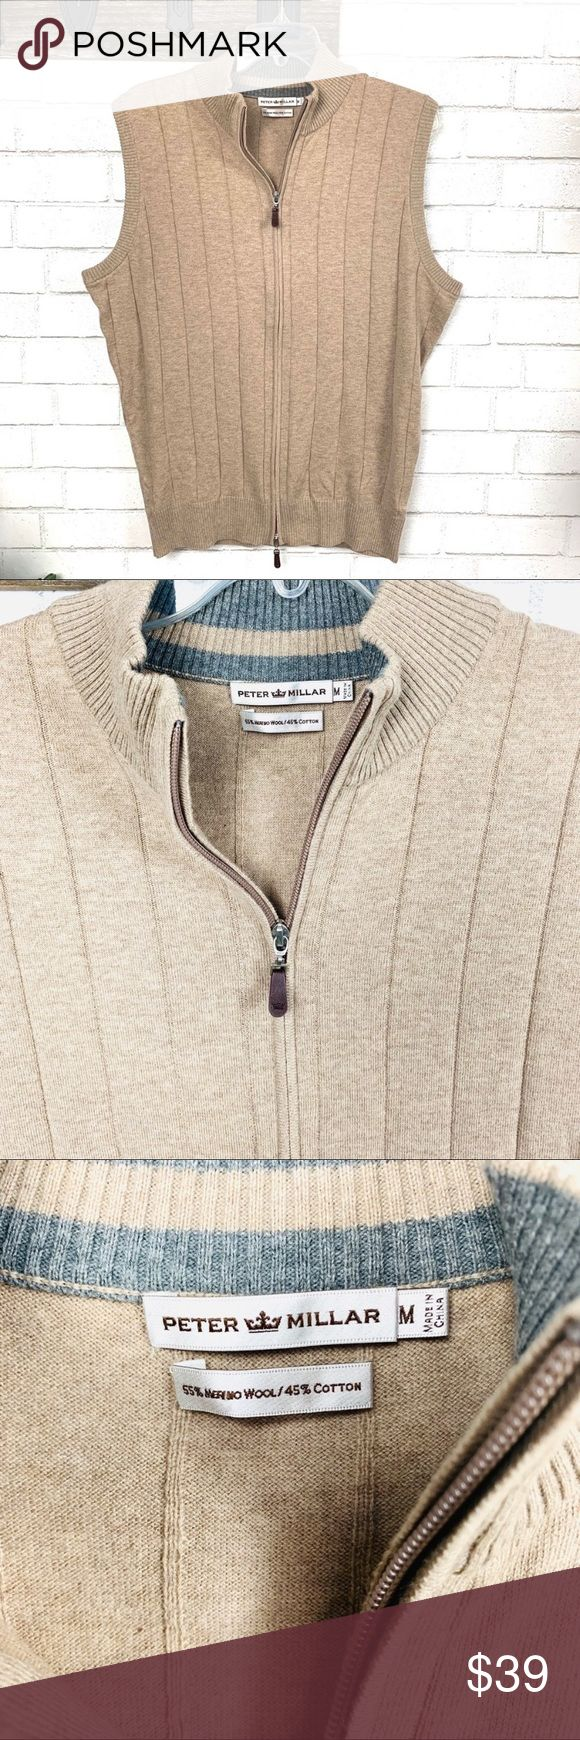 Peter Millar Merino wool blend Zip sweater vest M